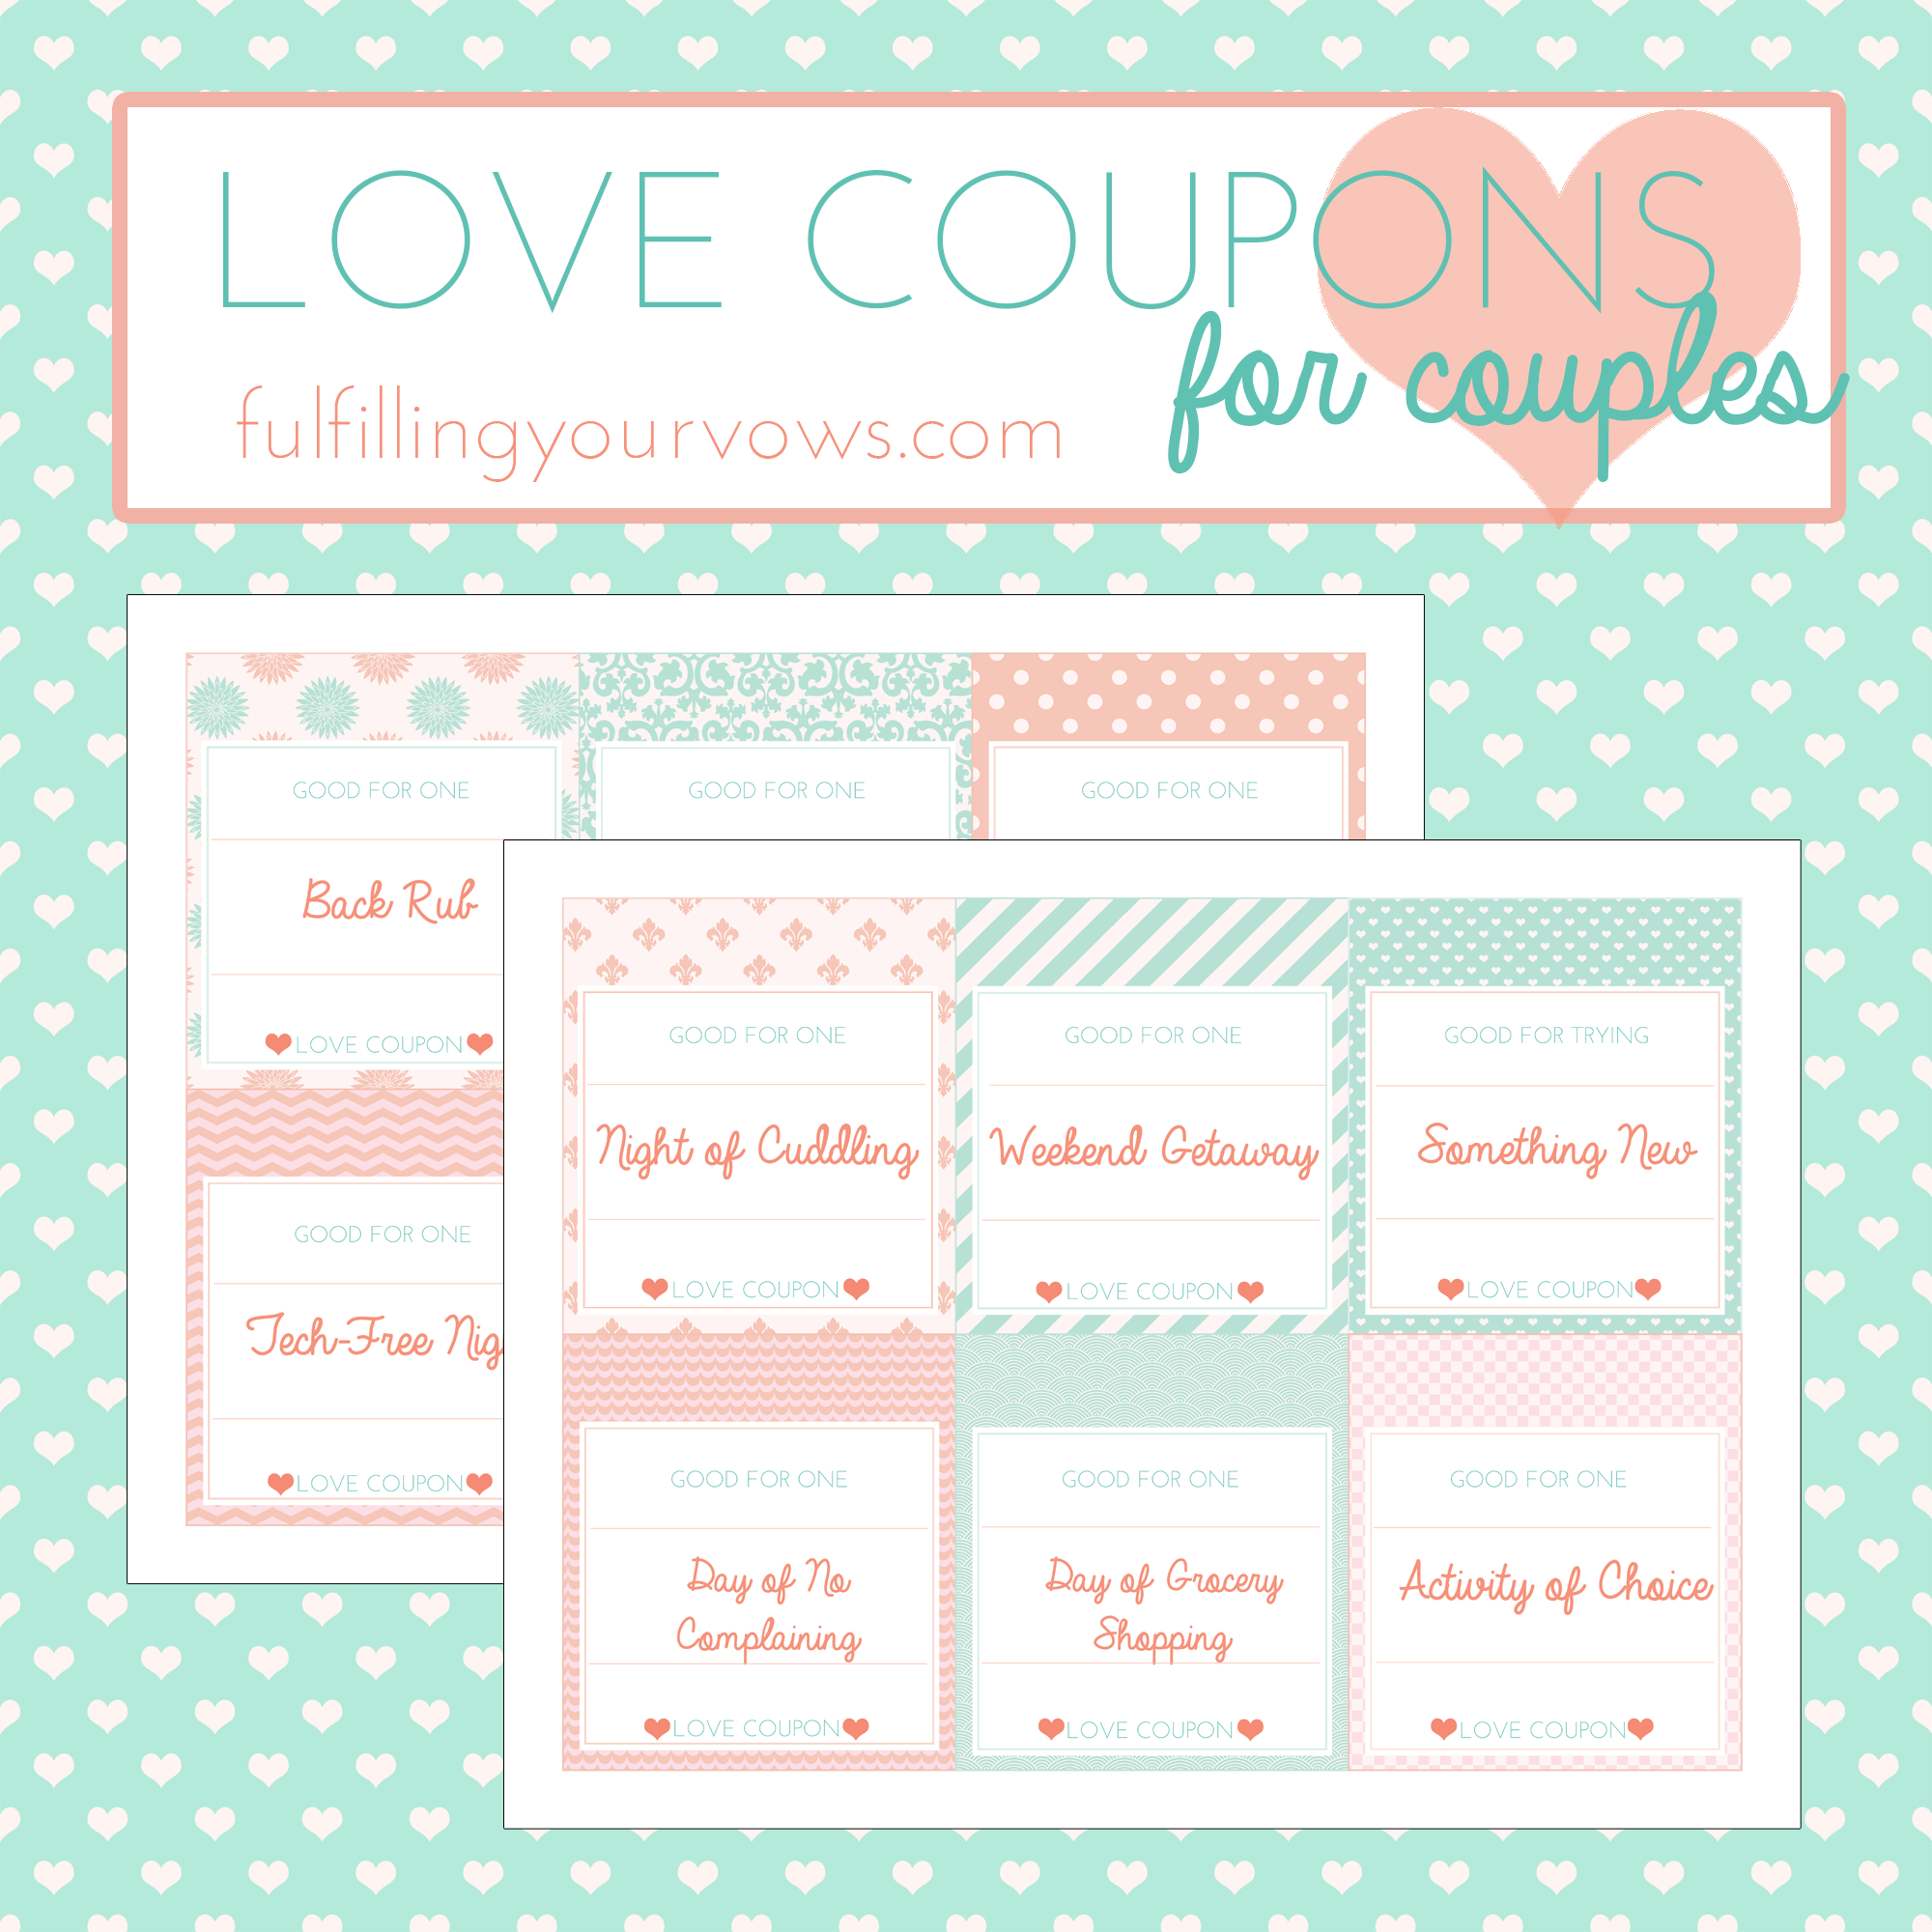 Free Printable Love Coupons For Couples - Fulfilling Your Vows - Free Printable Love Coupons For Wife